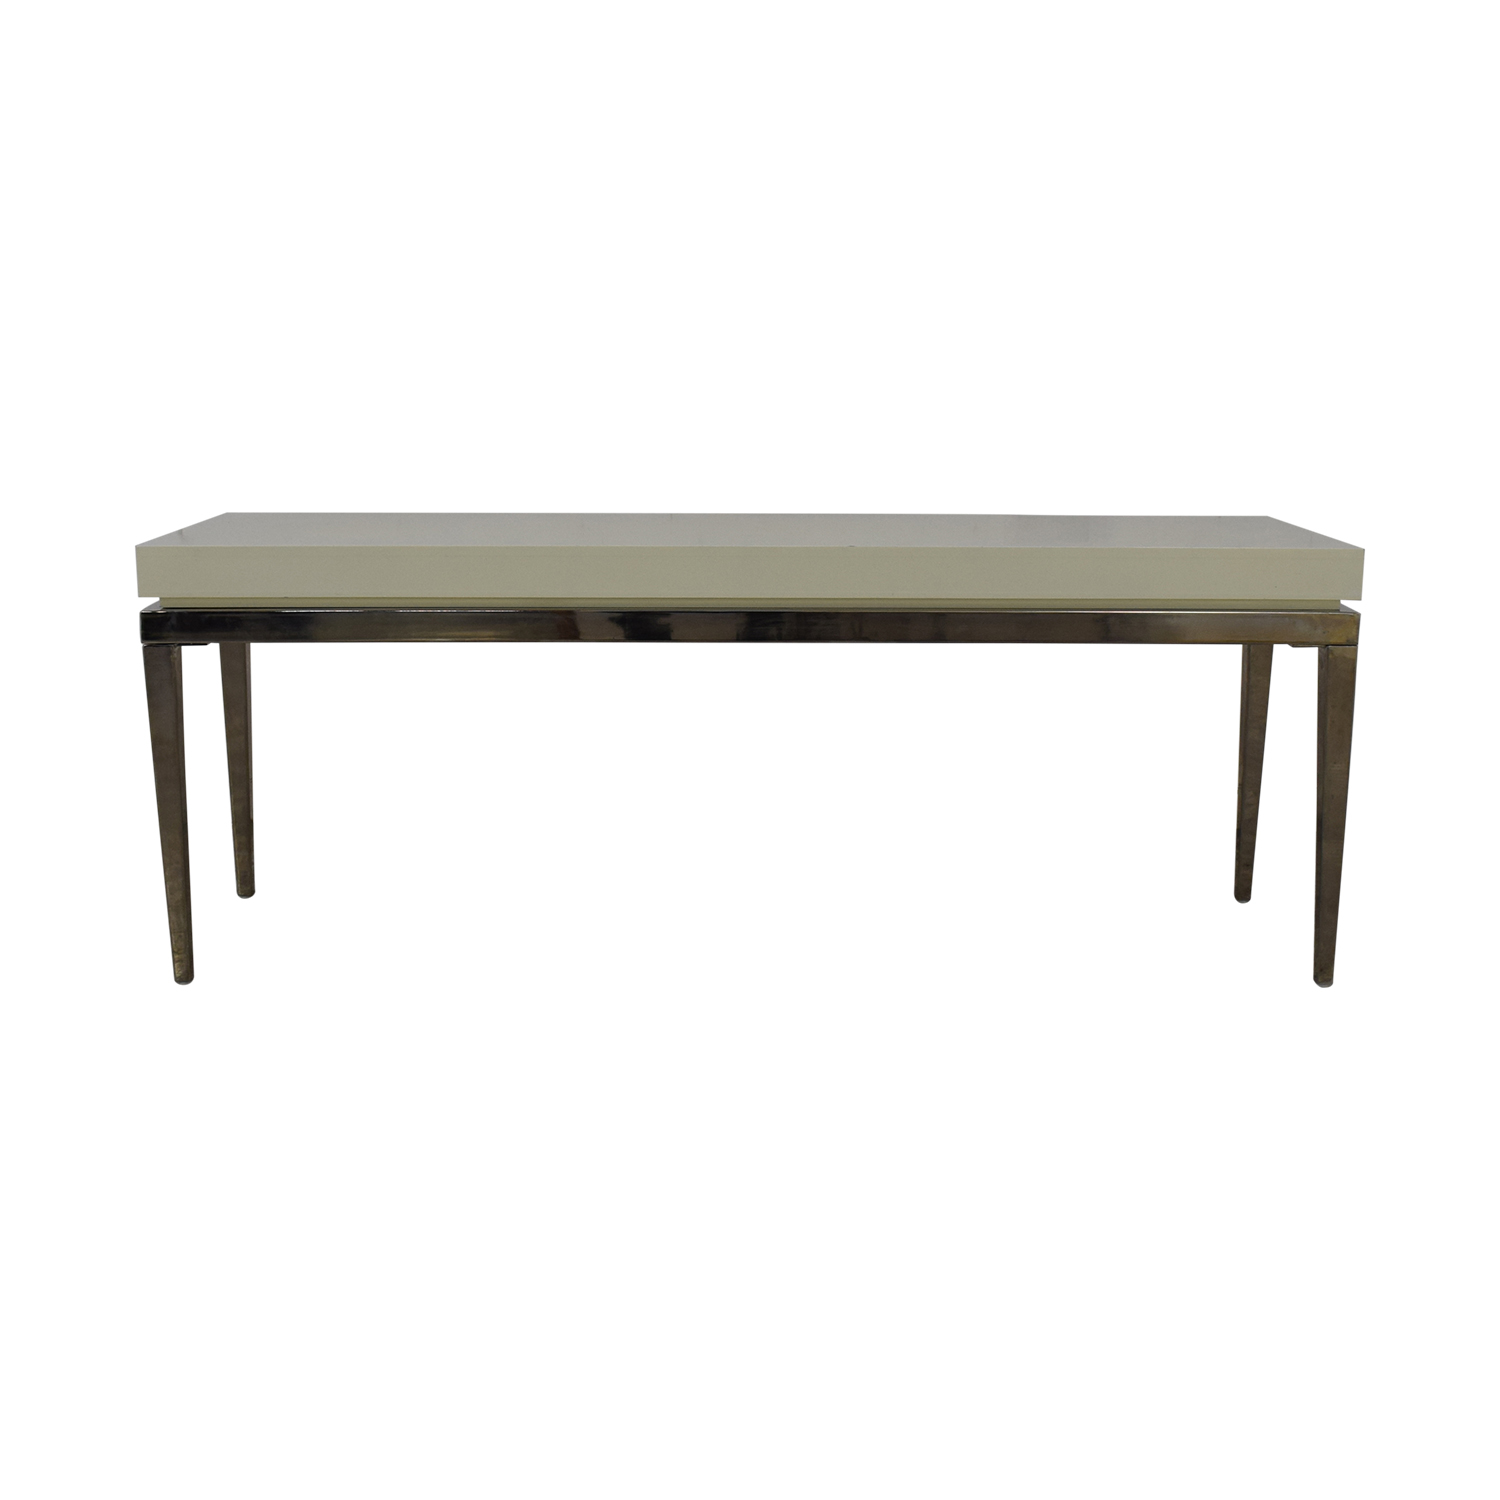 shop Jonathan Adler White and Silver Console Table Jonathan Adler Tables